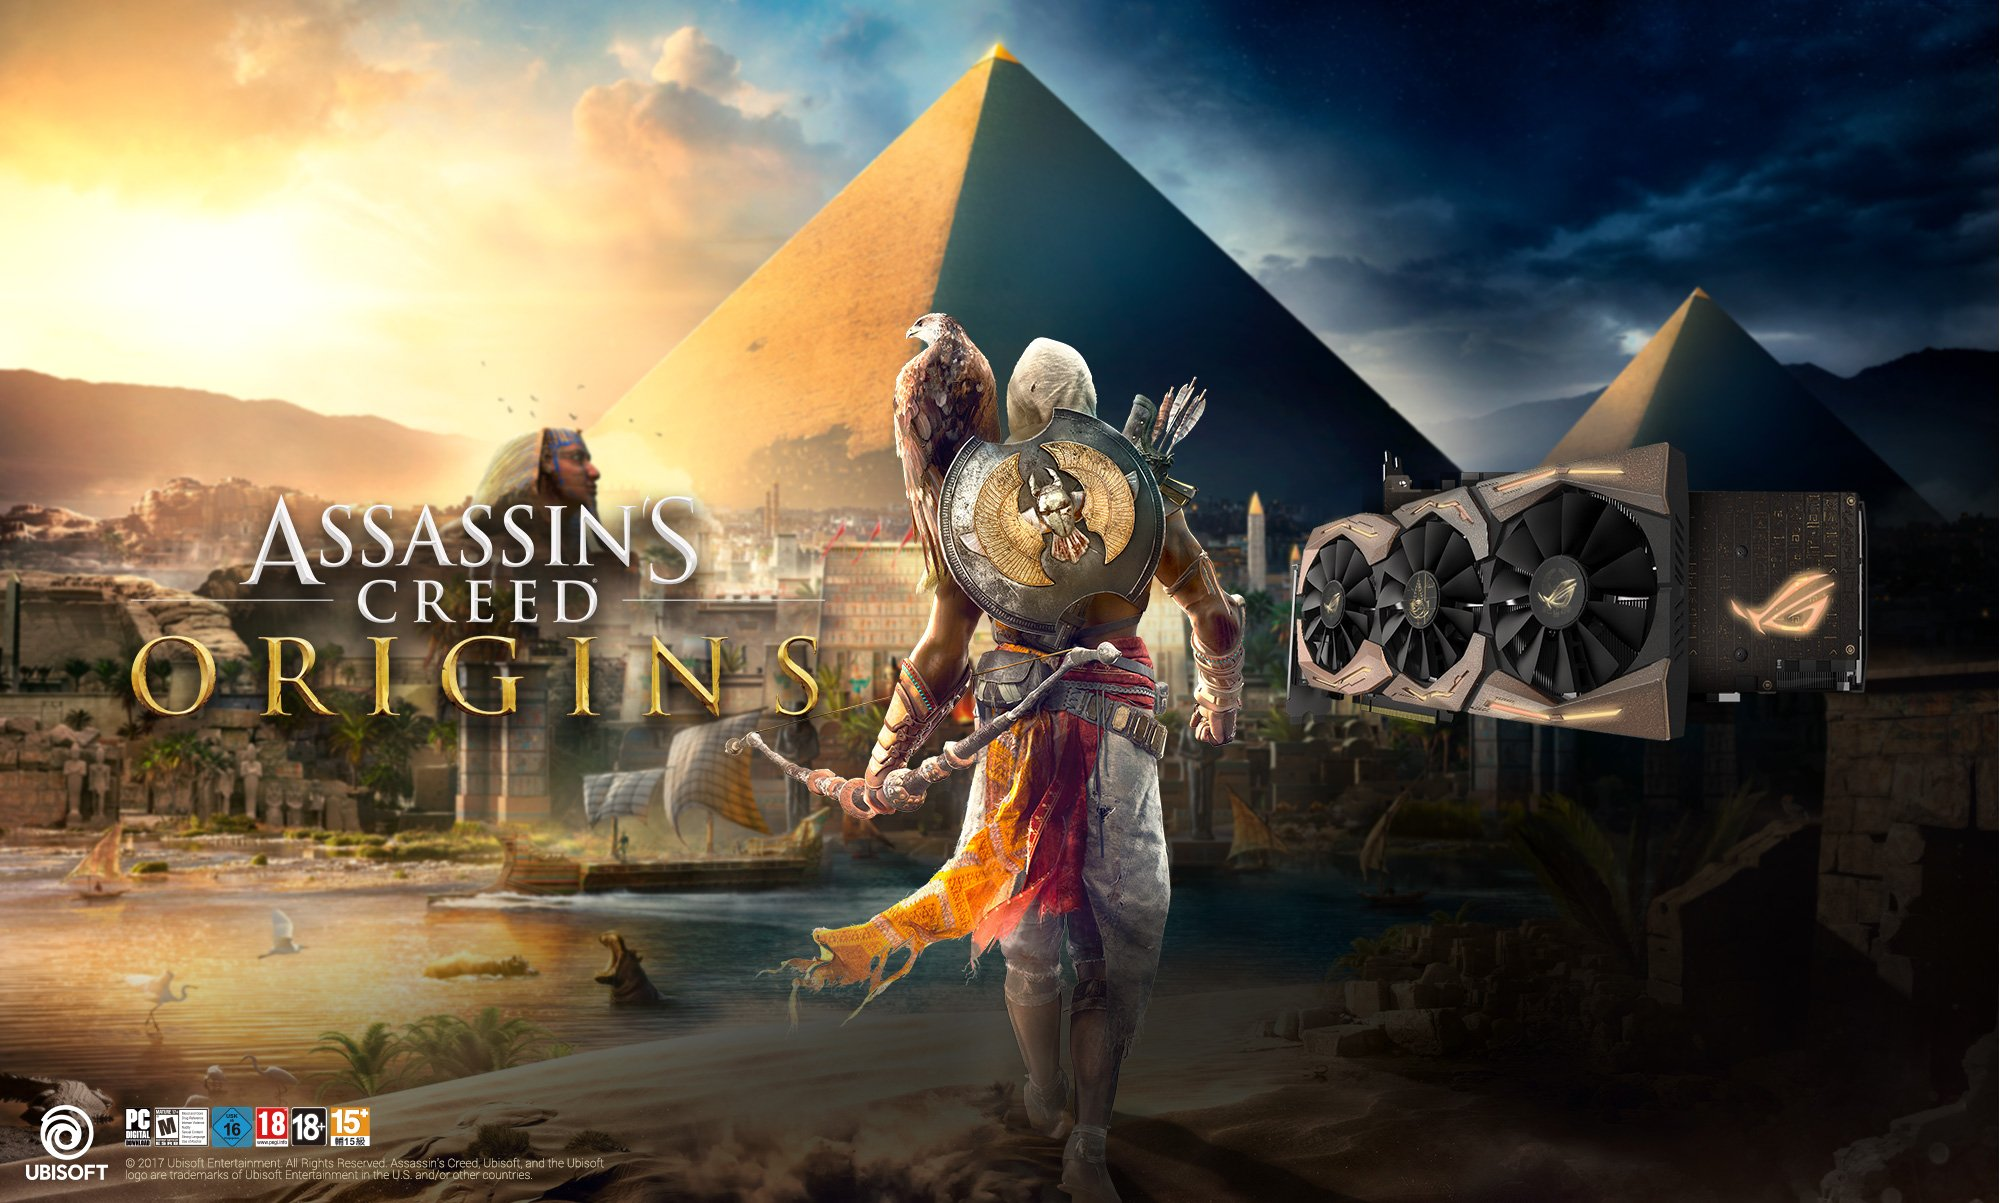 ASUS ROG Strix GeForce GTX 1080 Ti Assassins Creed Origins Edition Satışa Sunuldu